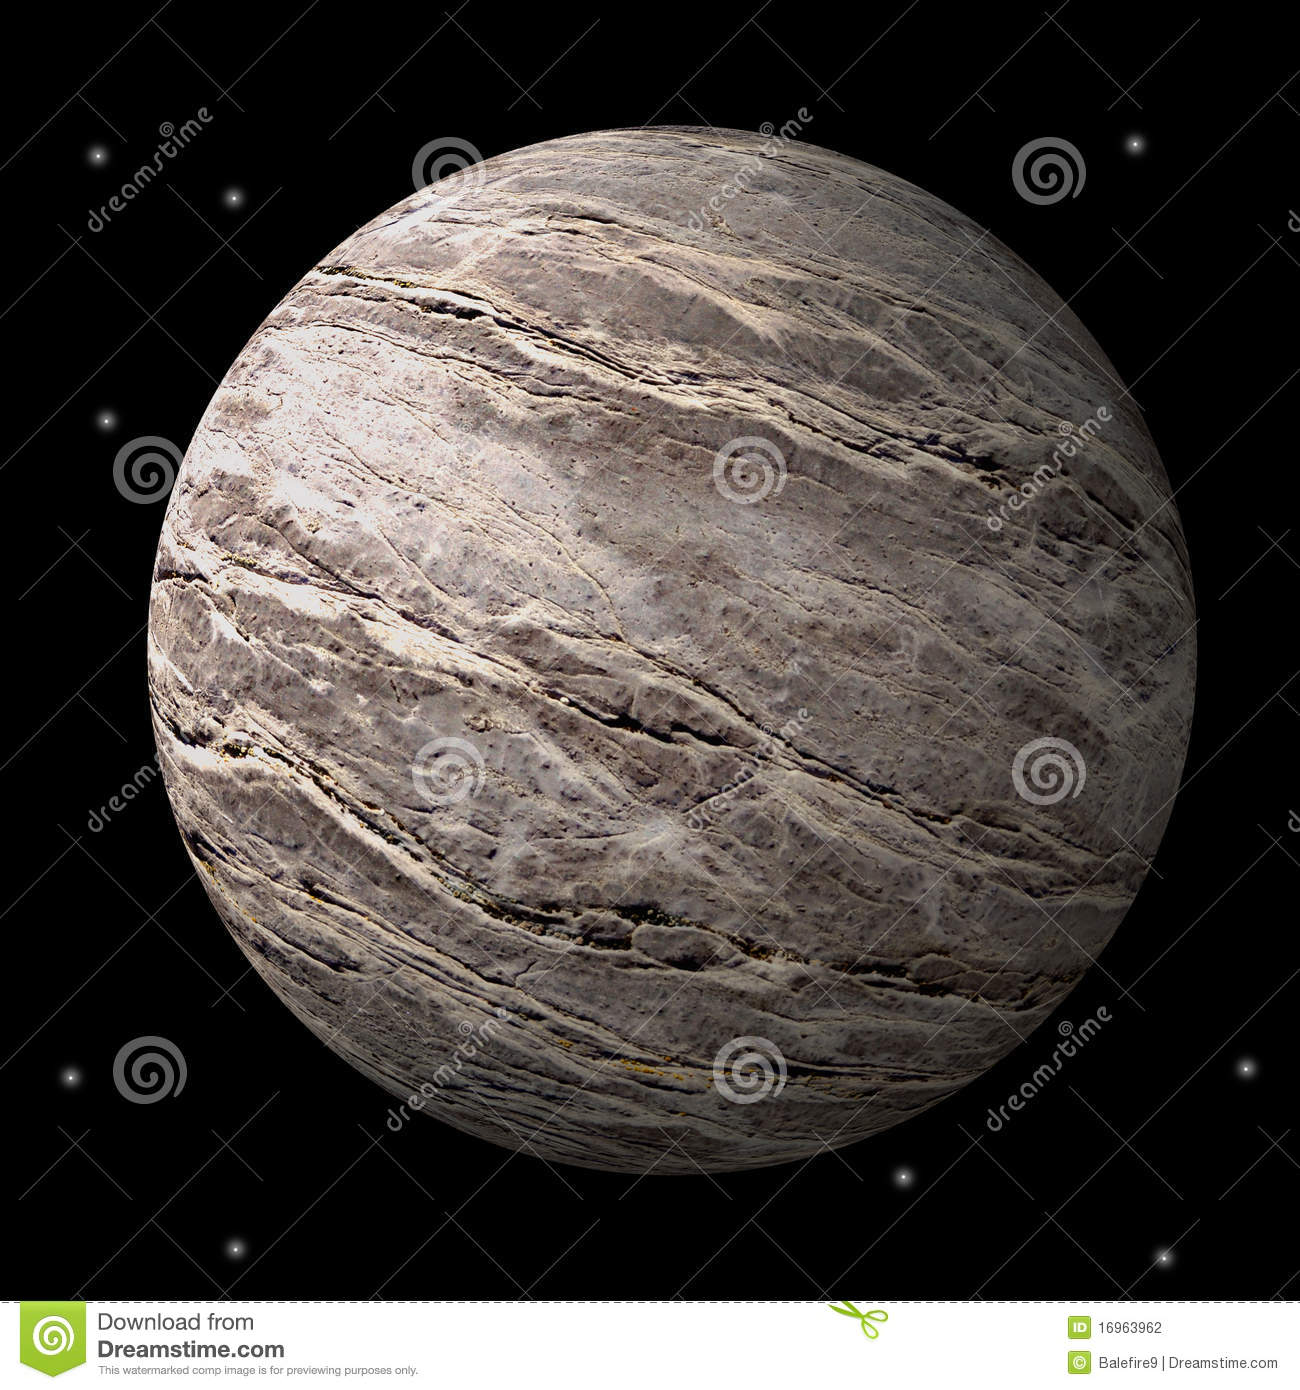 barren rocky planet or moon stock photo image of planet rock 16963962. Black Bedroom Furniture Sets. Home Design Ideas